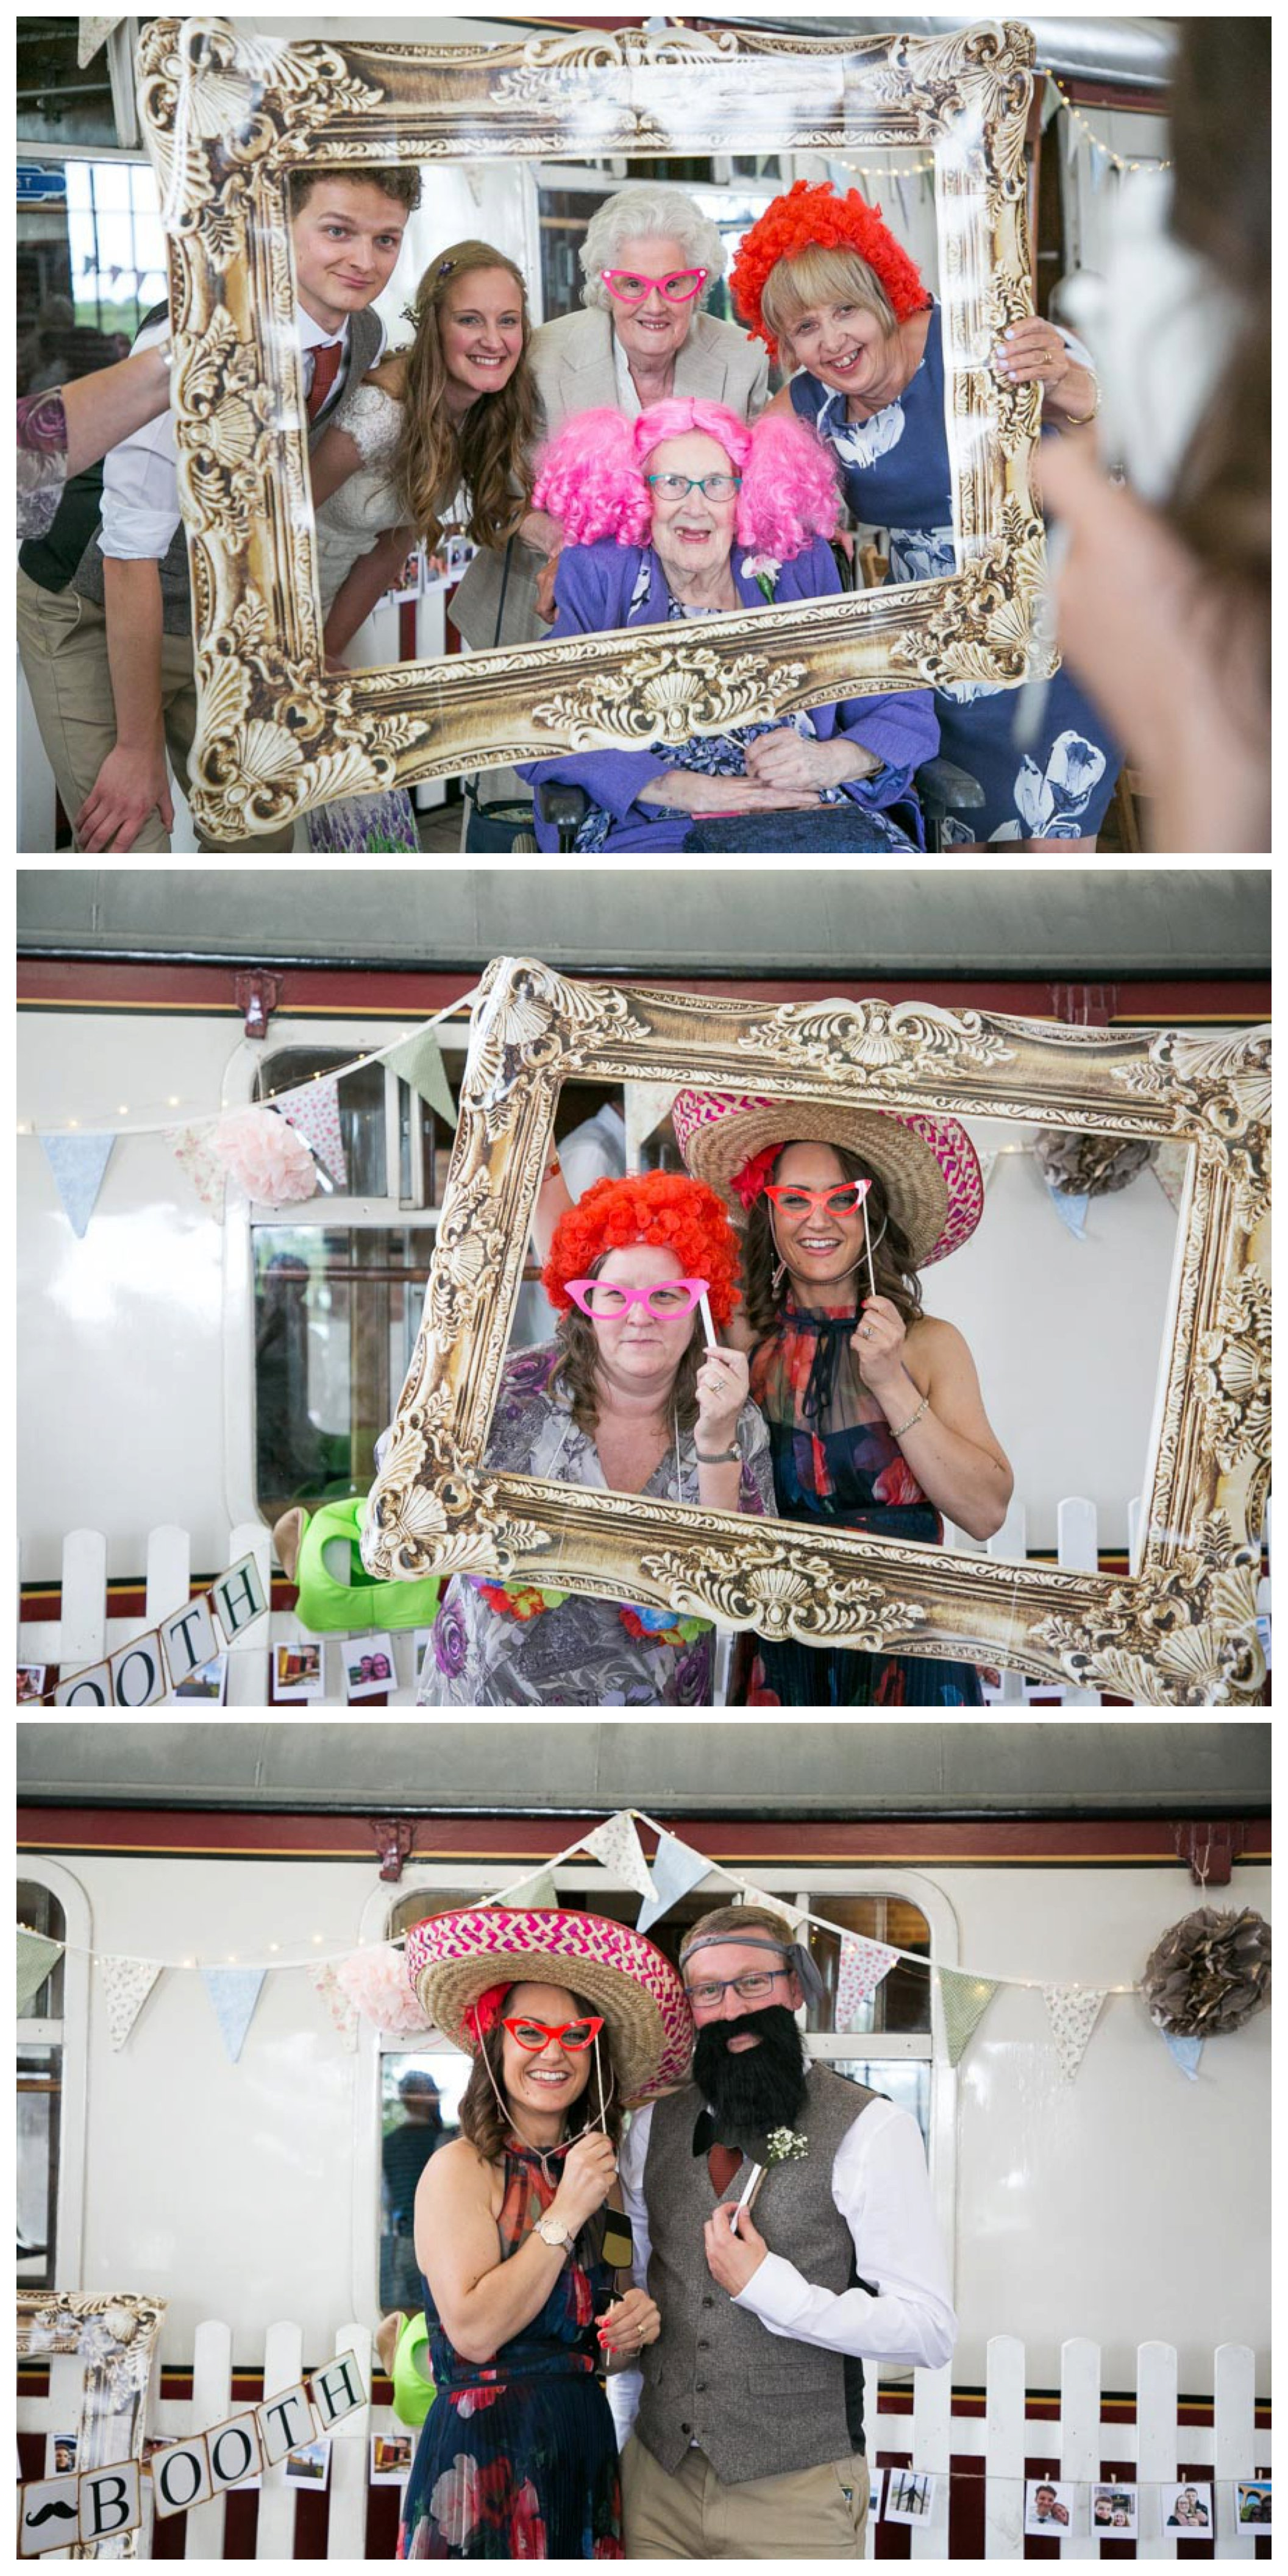 guests with hats and wigs on for photo booth at wedding reception